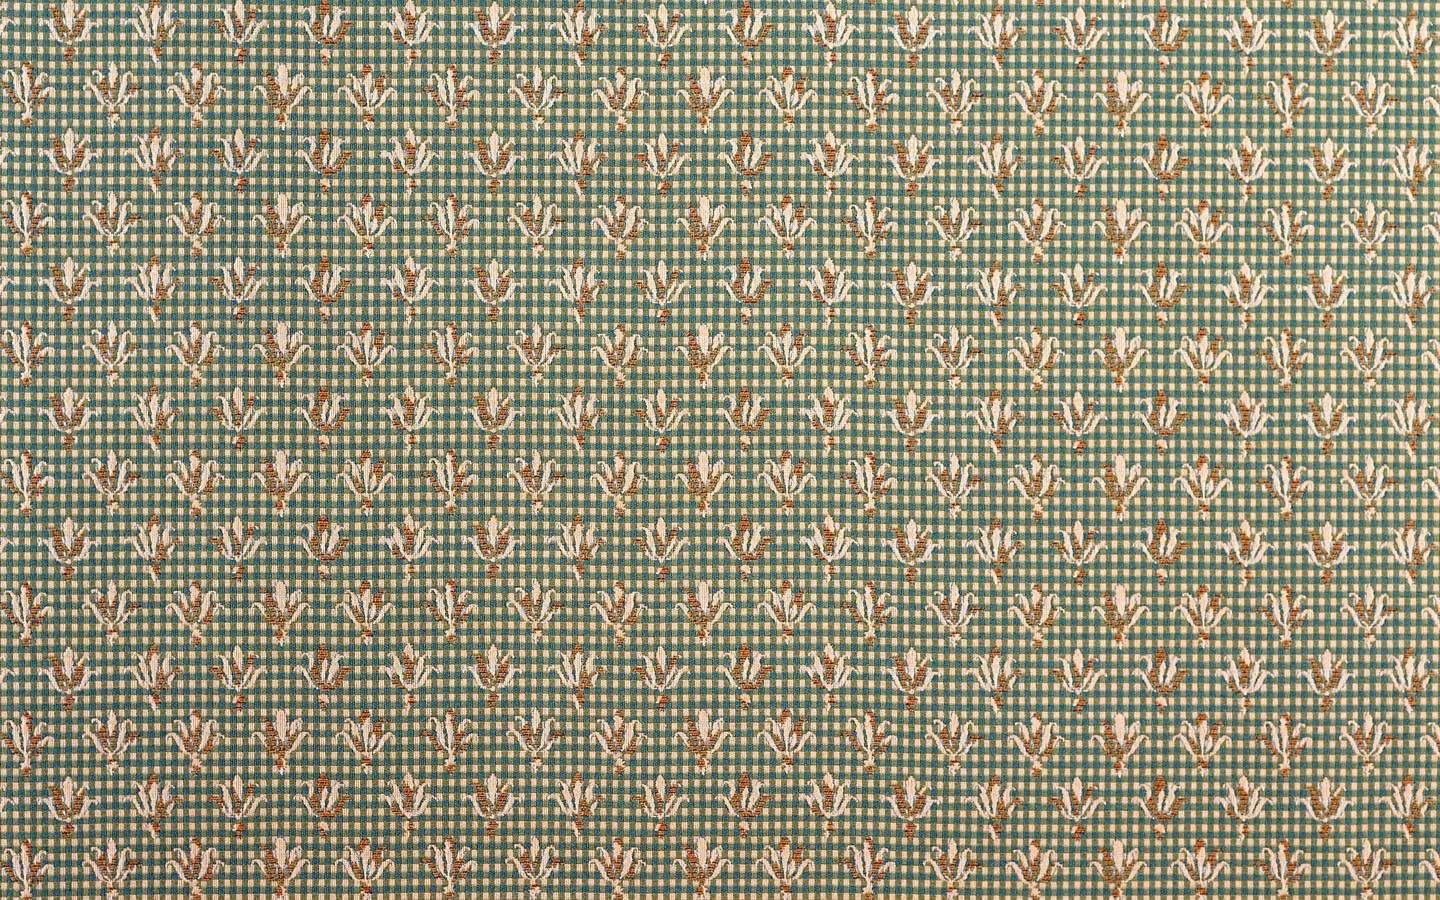 Fabric texture 15446